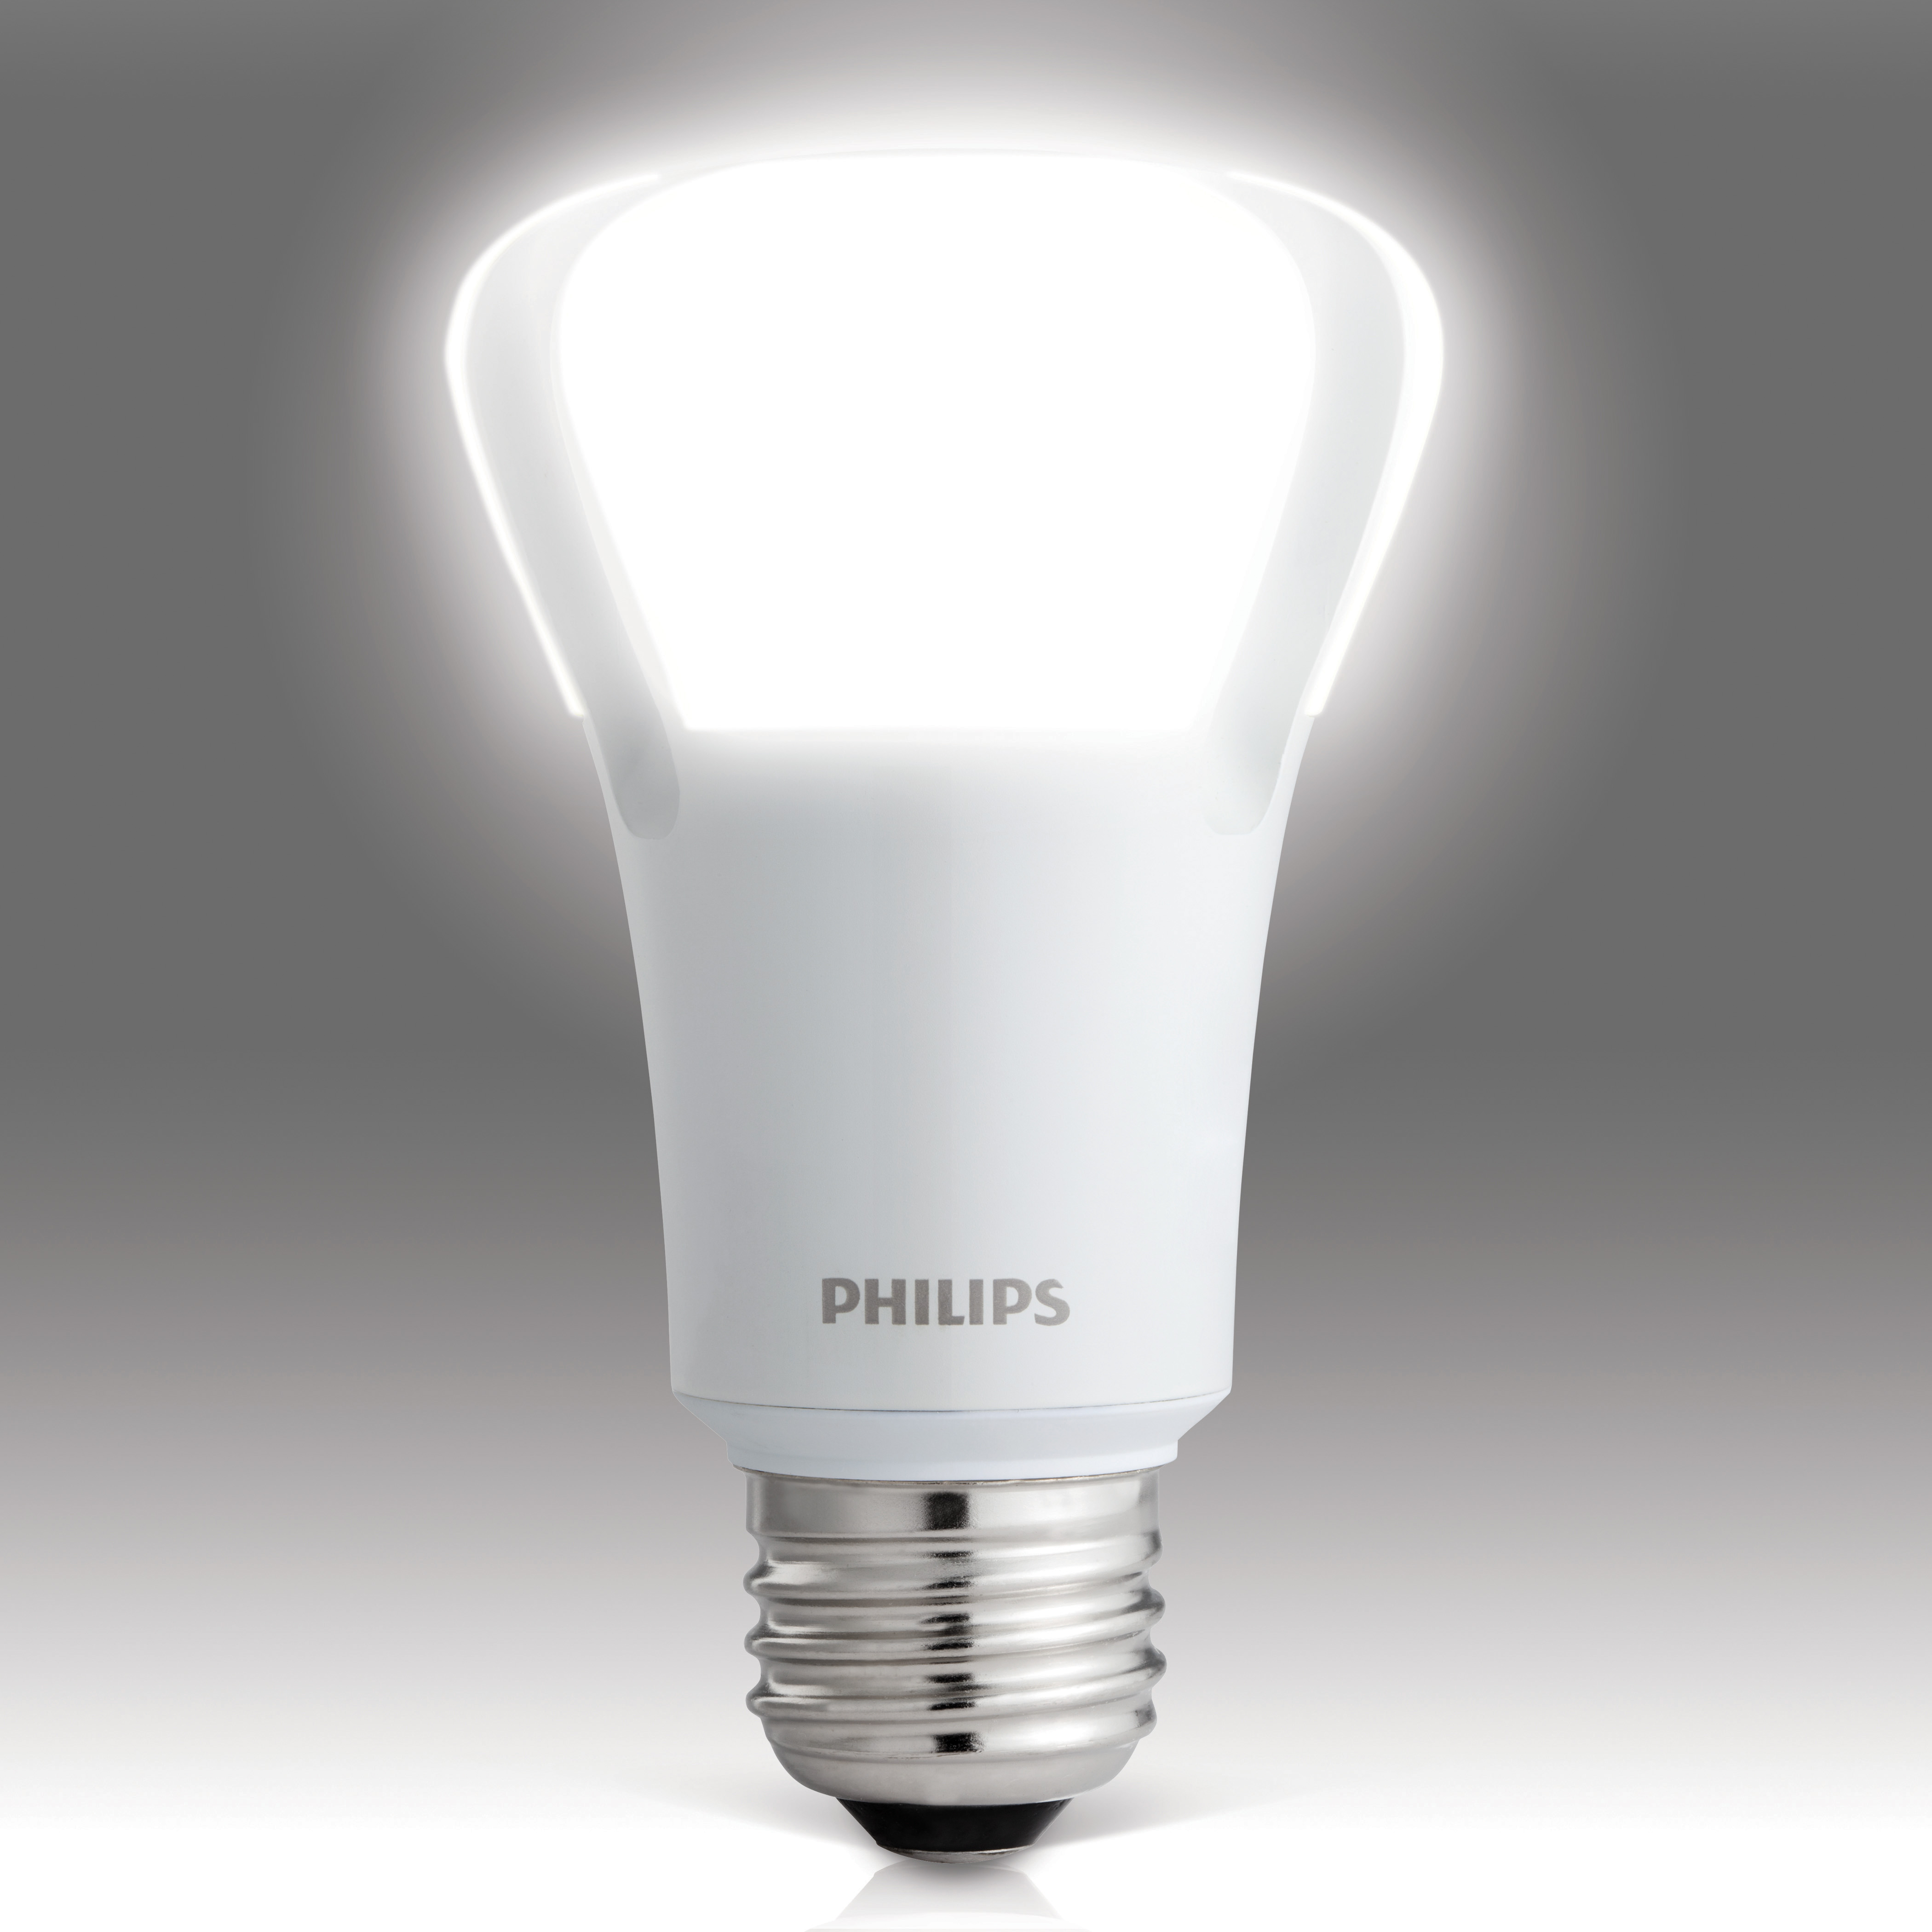 led lighting w glancing on light hairy cnet switches bulb splendid househ bright so par fd equivalent flood philips